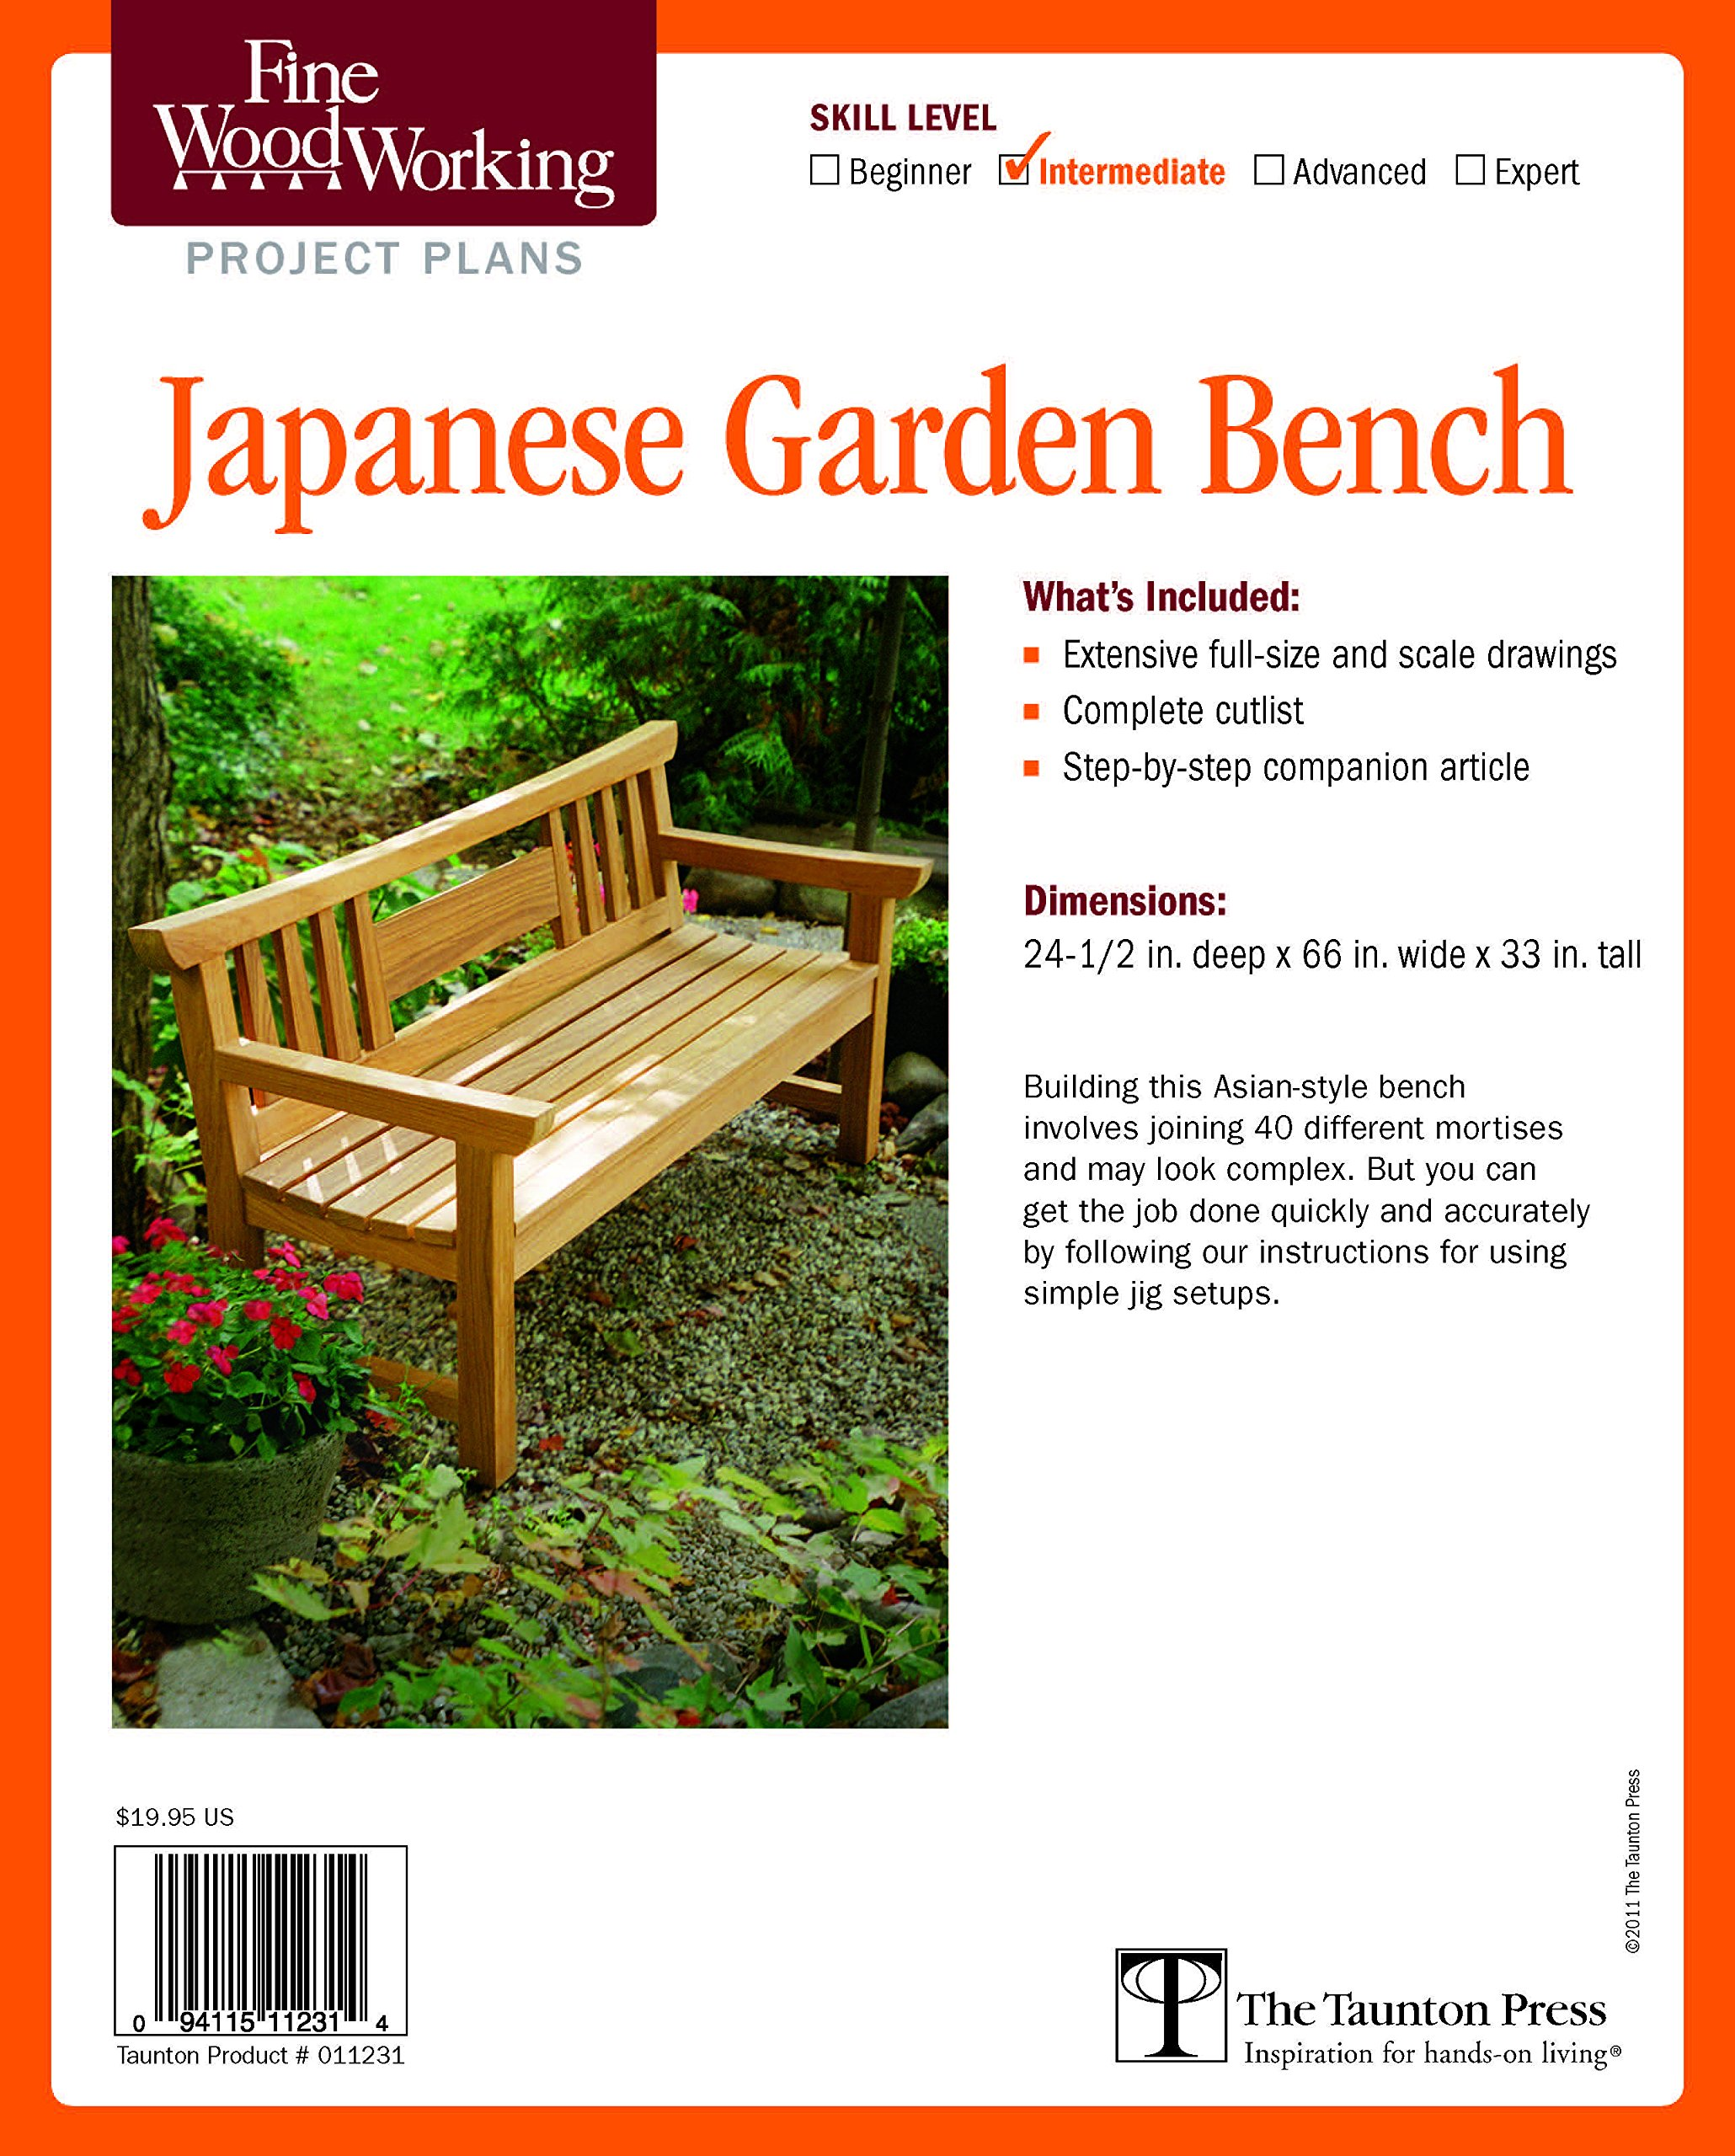 Amazon.com: Fine Woodworkingu0027s Japanese Garden Bench Plan (Fine Woodworking  Project Plans) (9781600856266): Editors Of Fine Woodworking: Books